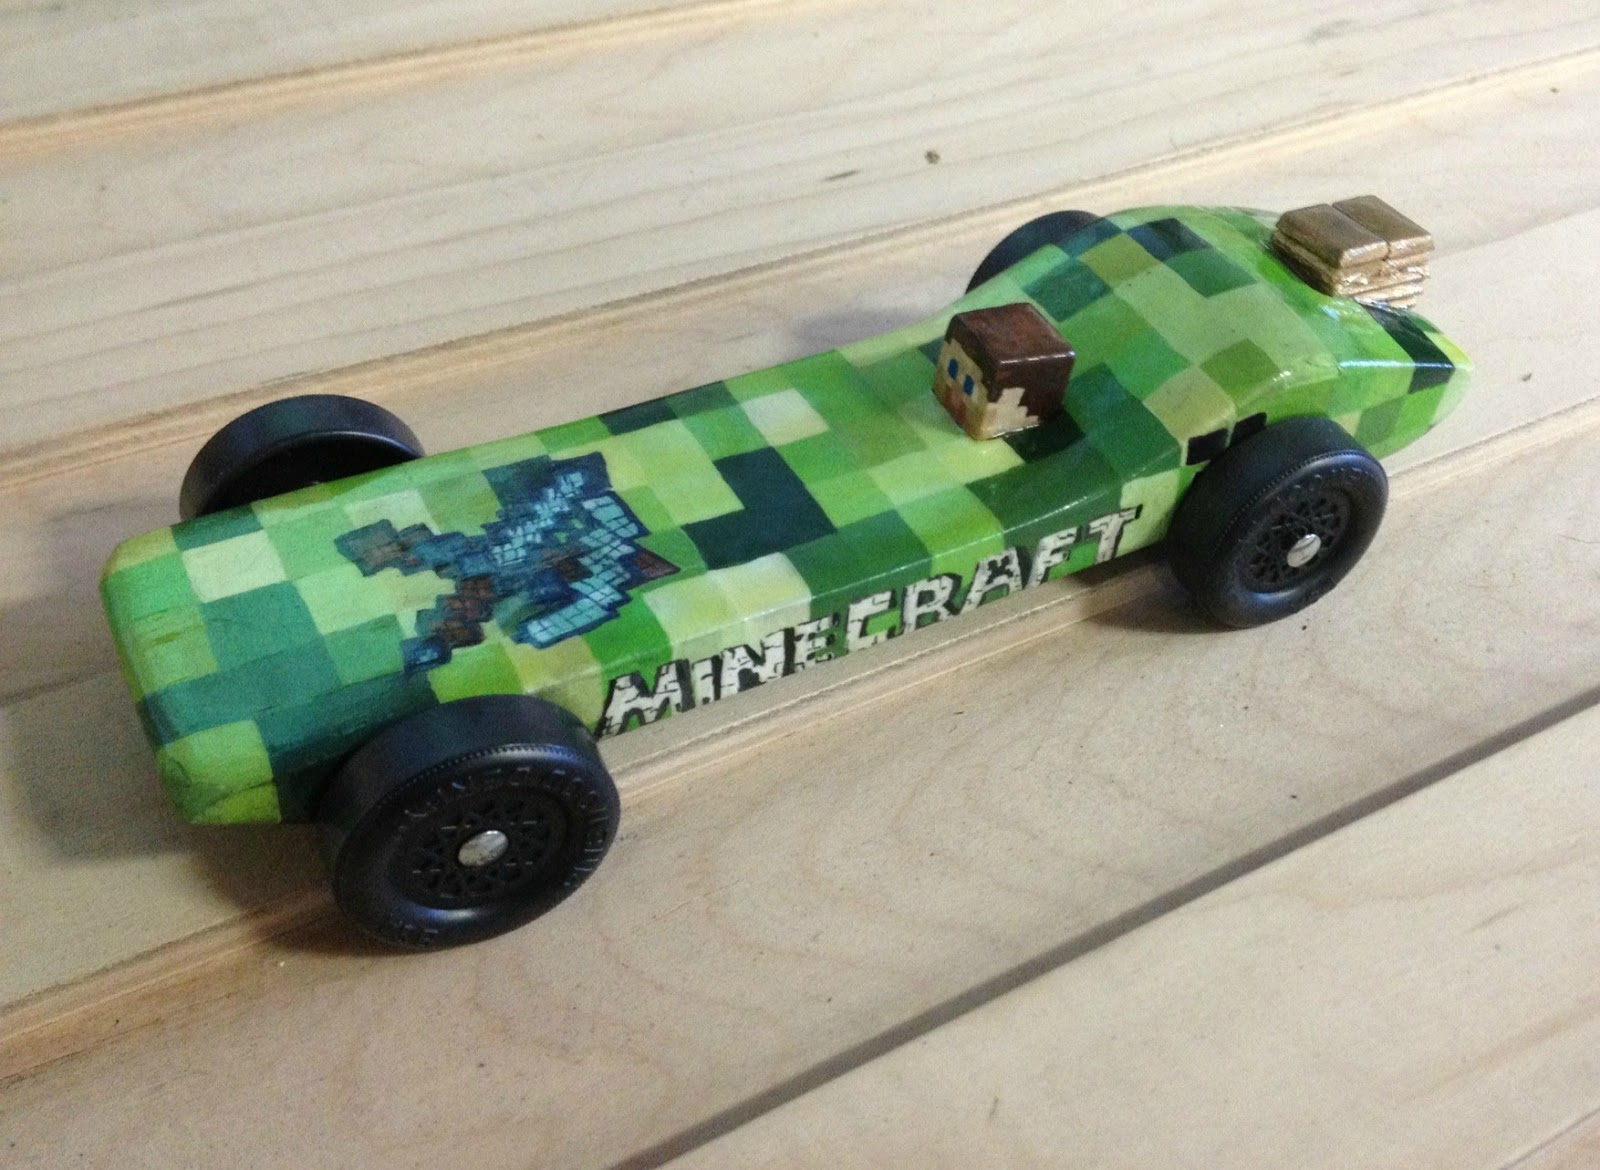 Pinewood derby cars cars wallpaper hd for desktop laptop and gadget for Pinewood derby car image